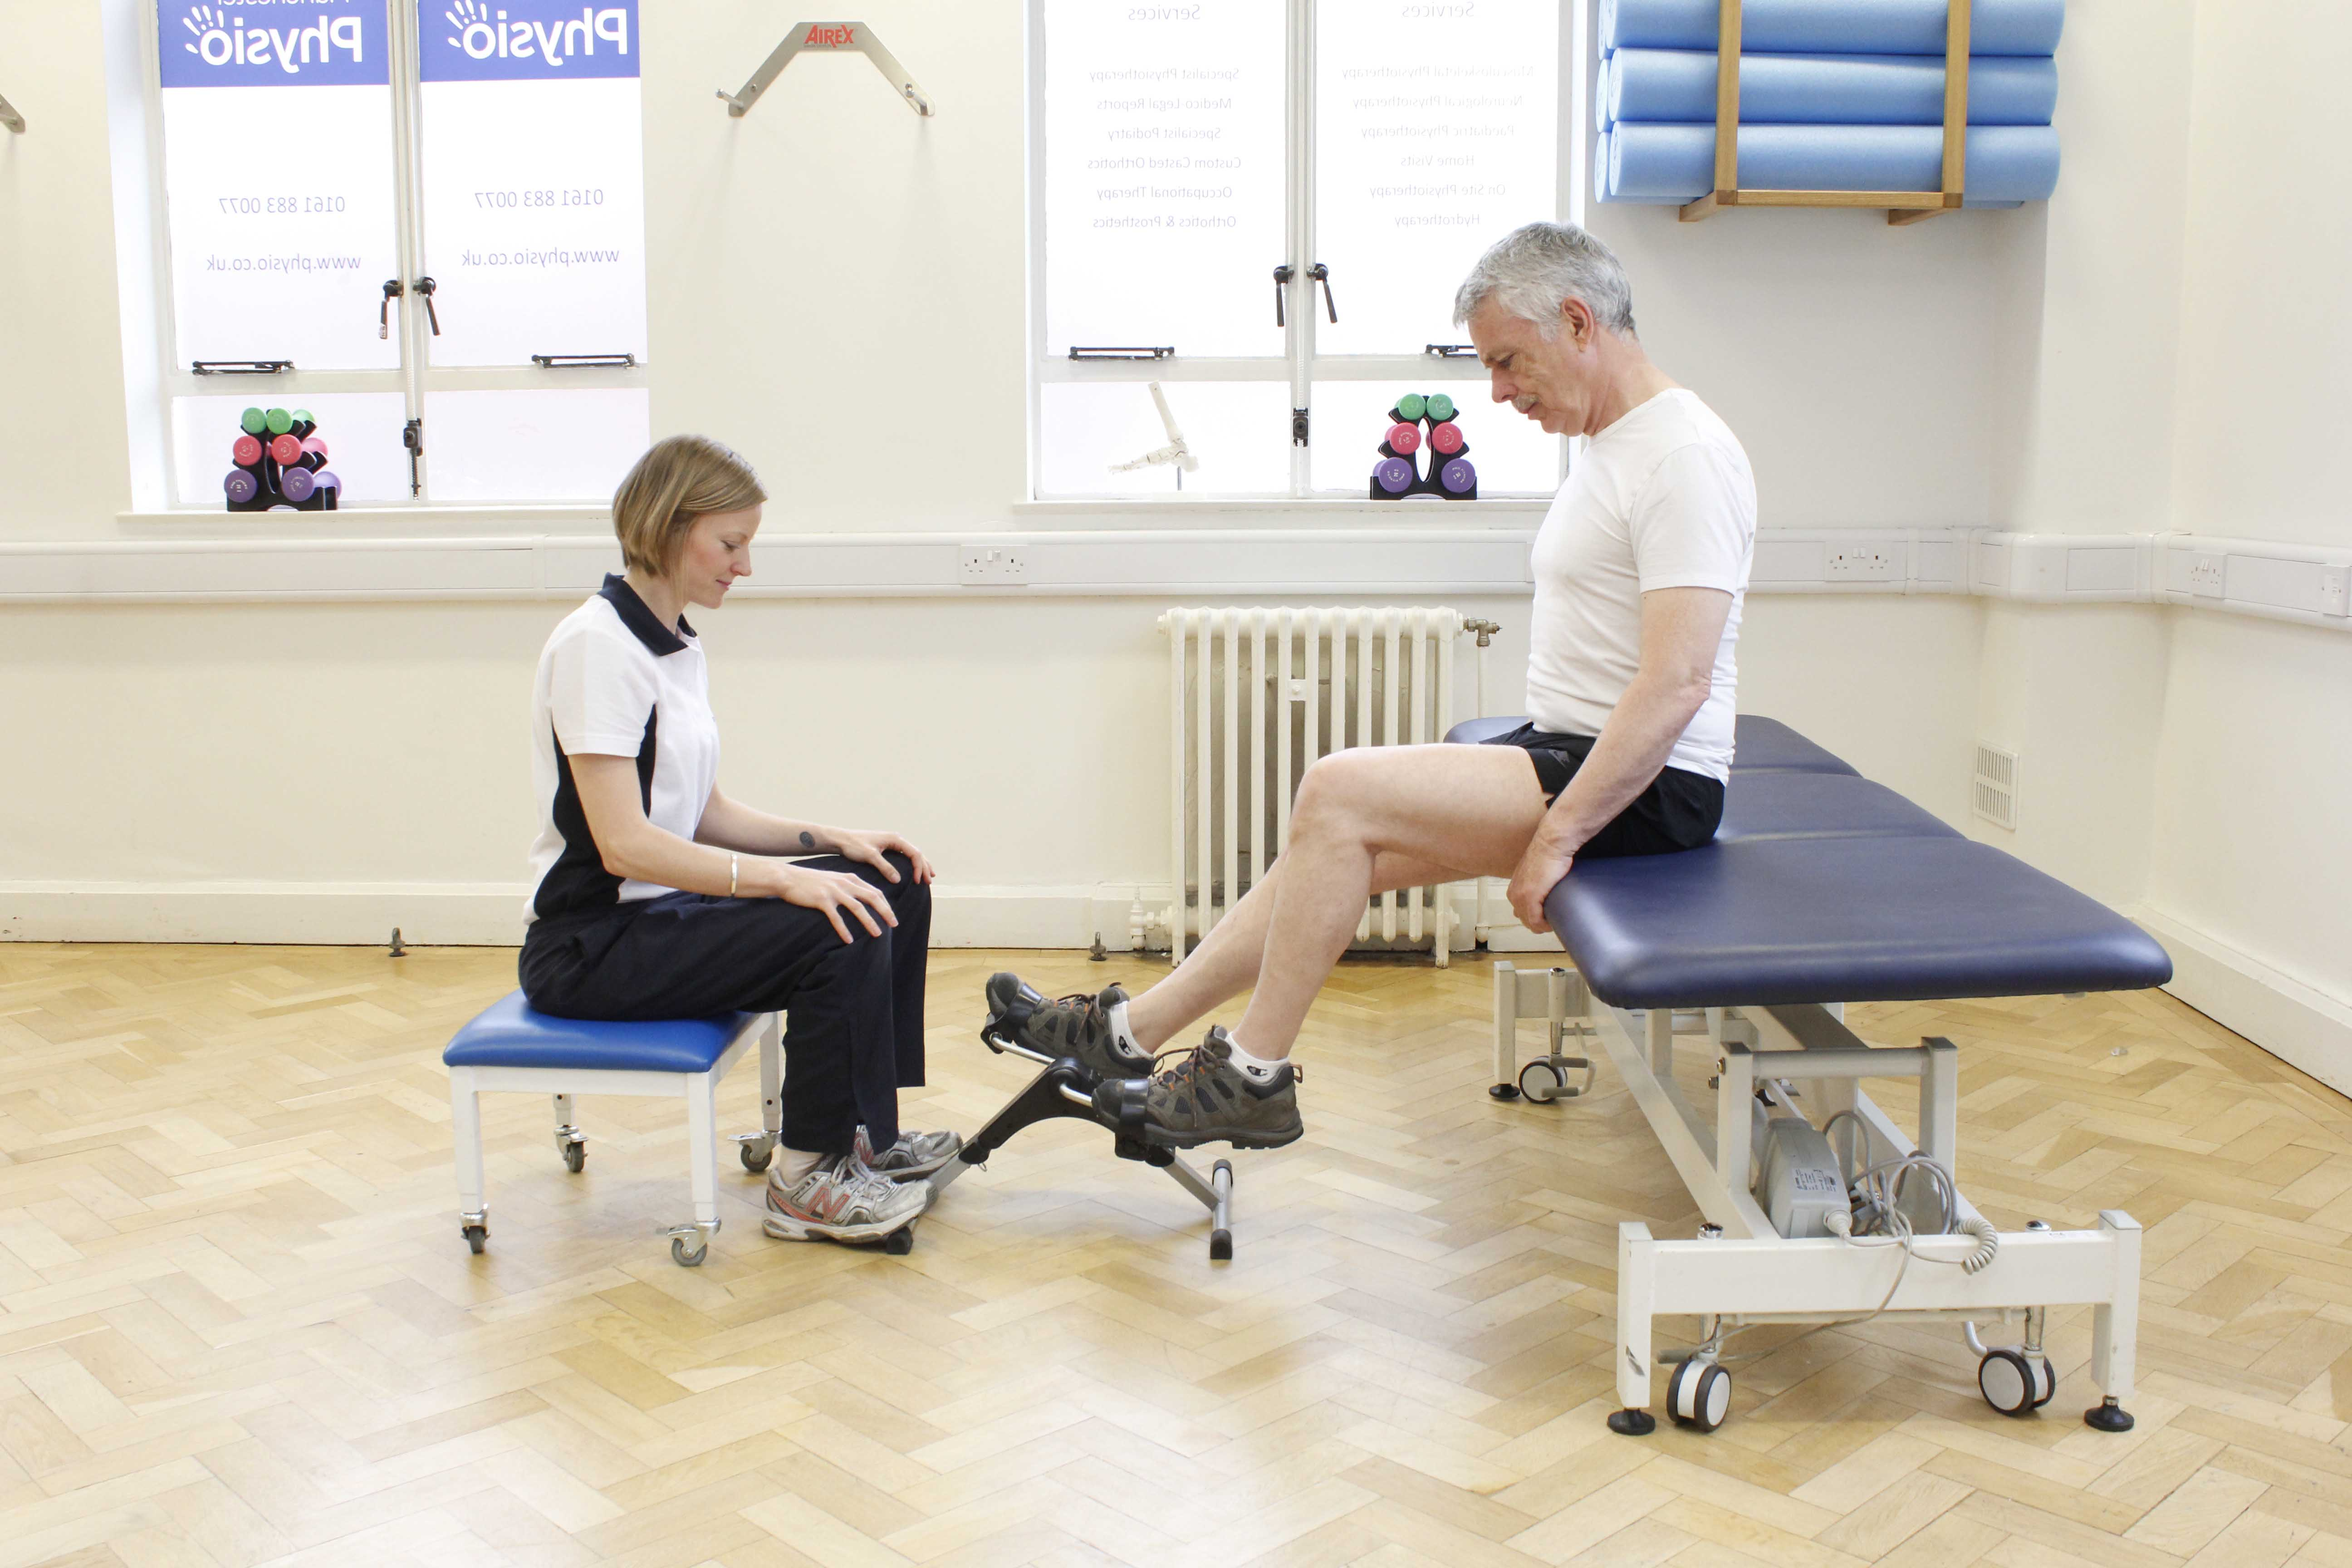 Physiotherapy exercises plans will be adjusted to an appropriate level for the client